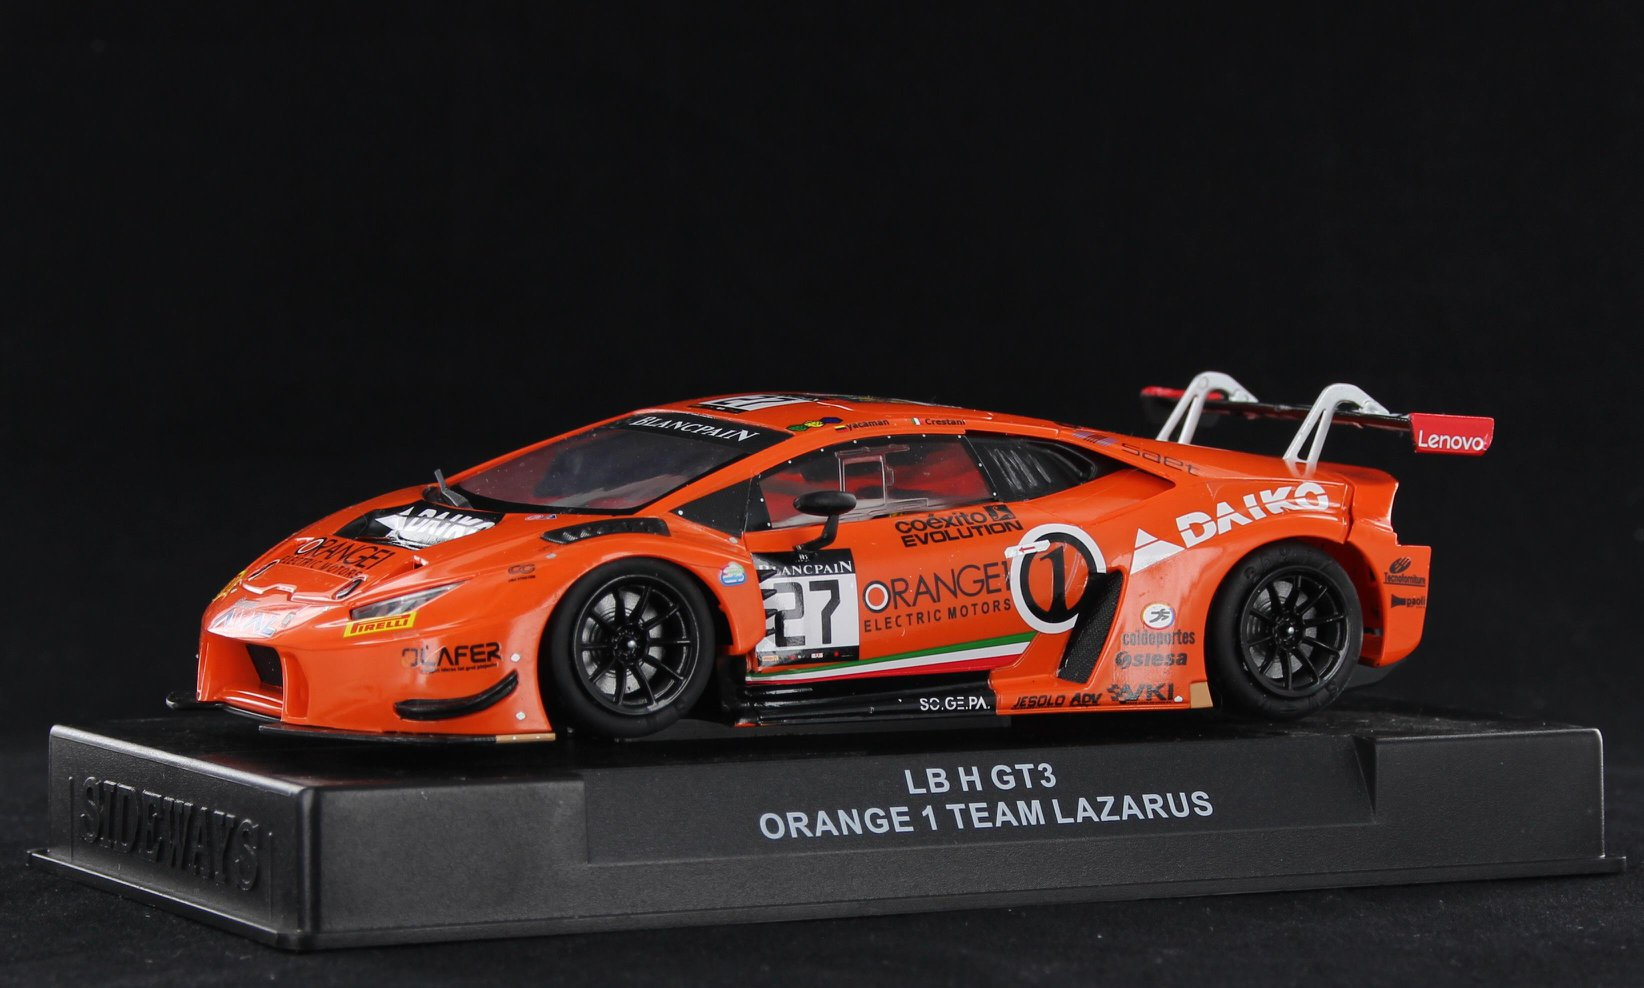 - SWCAR01D LB H Gt3 Orange 1 Team Lazarus